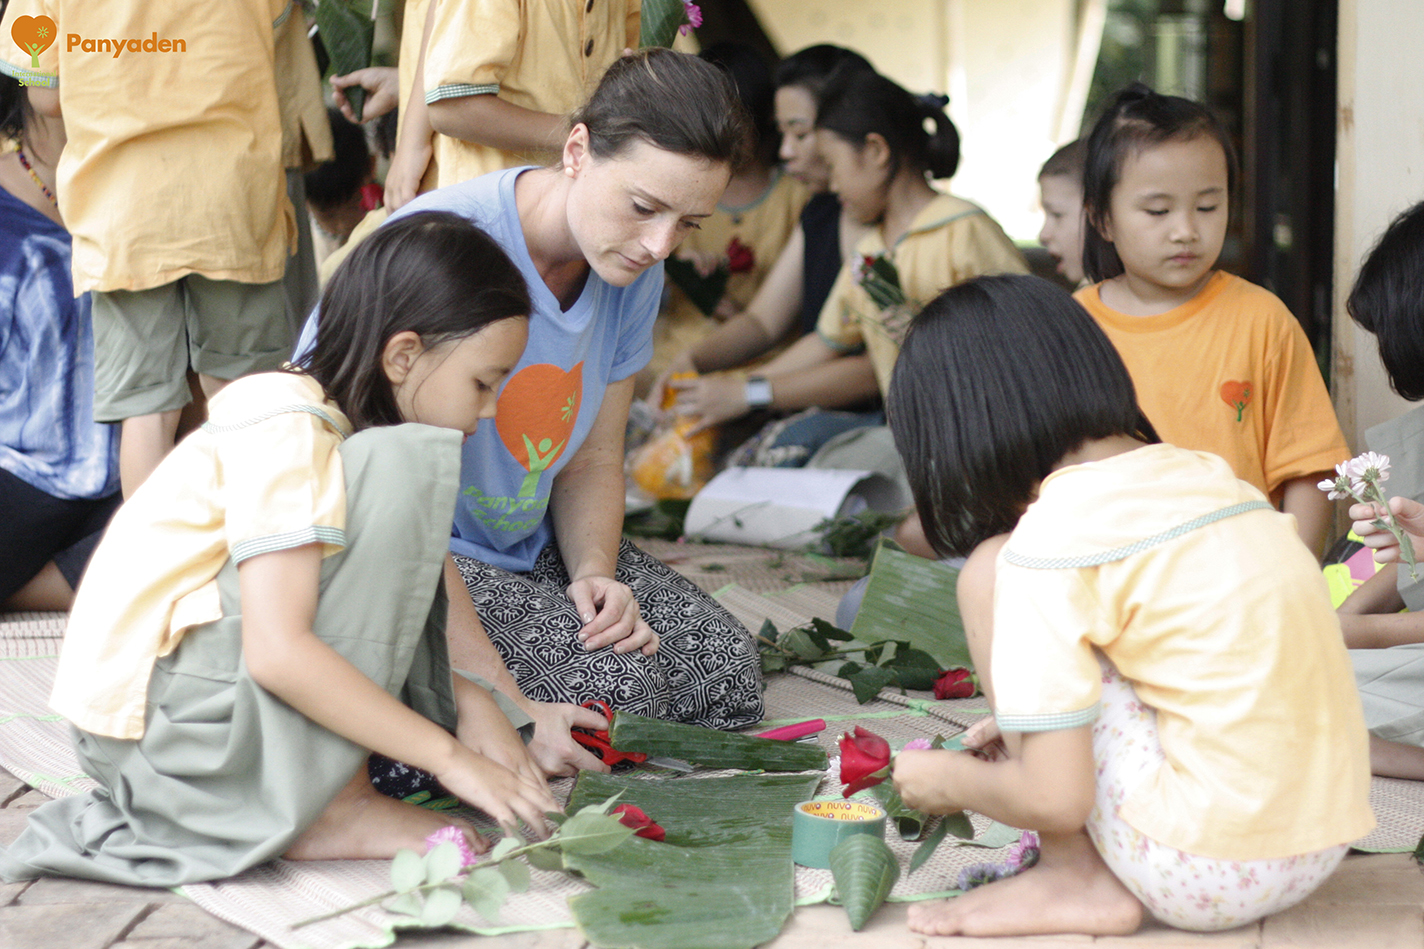 Panyaden Wai Kru Day 2017 preparation - Panyaden primary students cutting up banana leaves for flowers